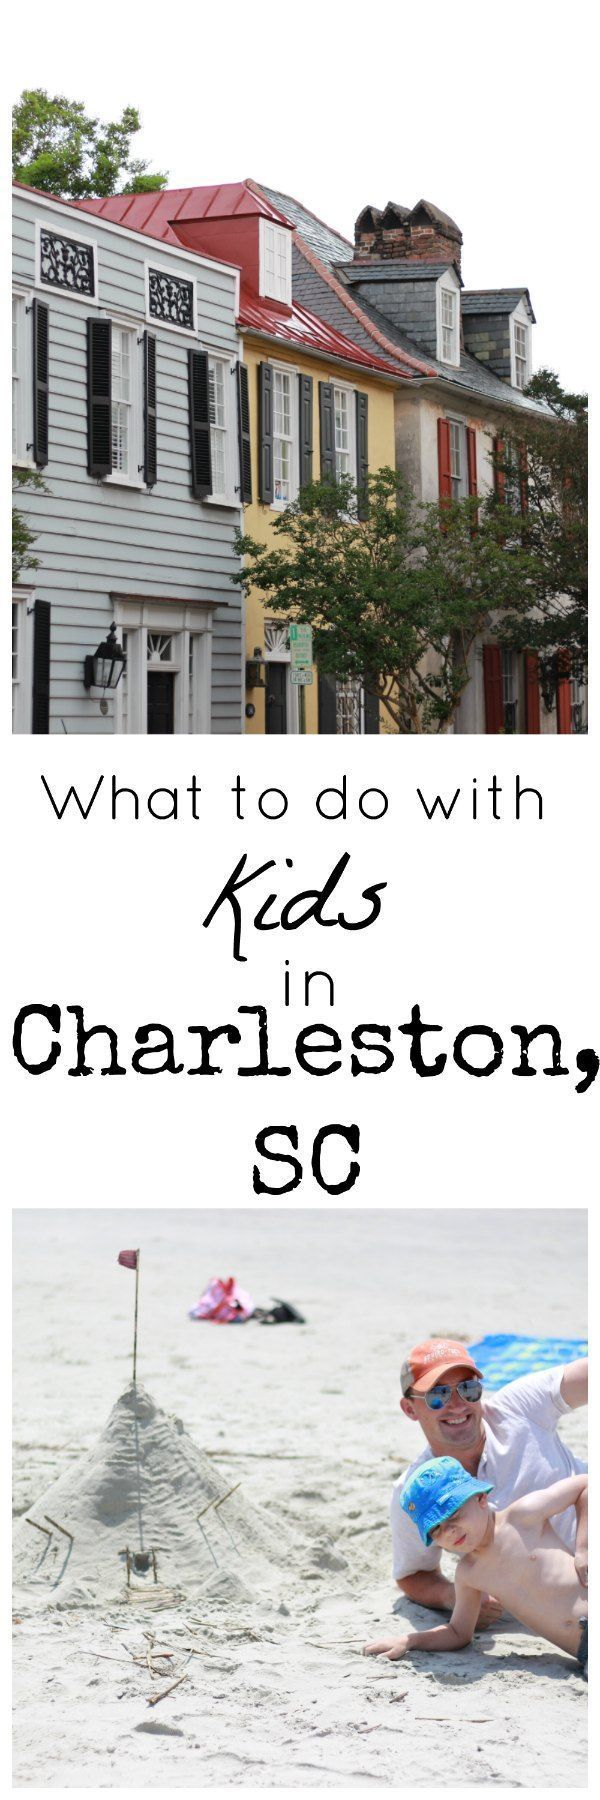 Fun things to do in charleston south carolina with kids for Things to do charleston south carolina